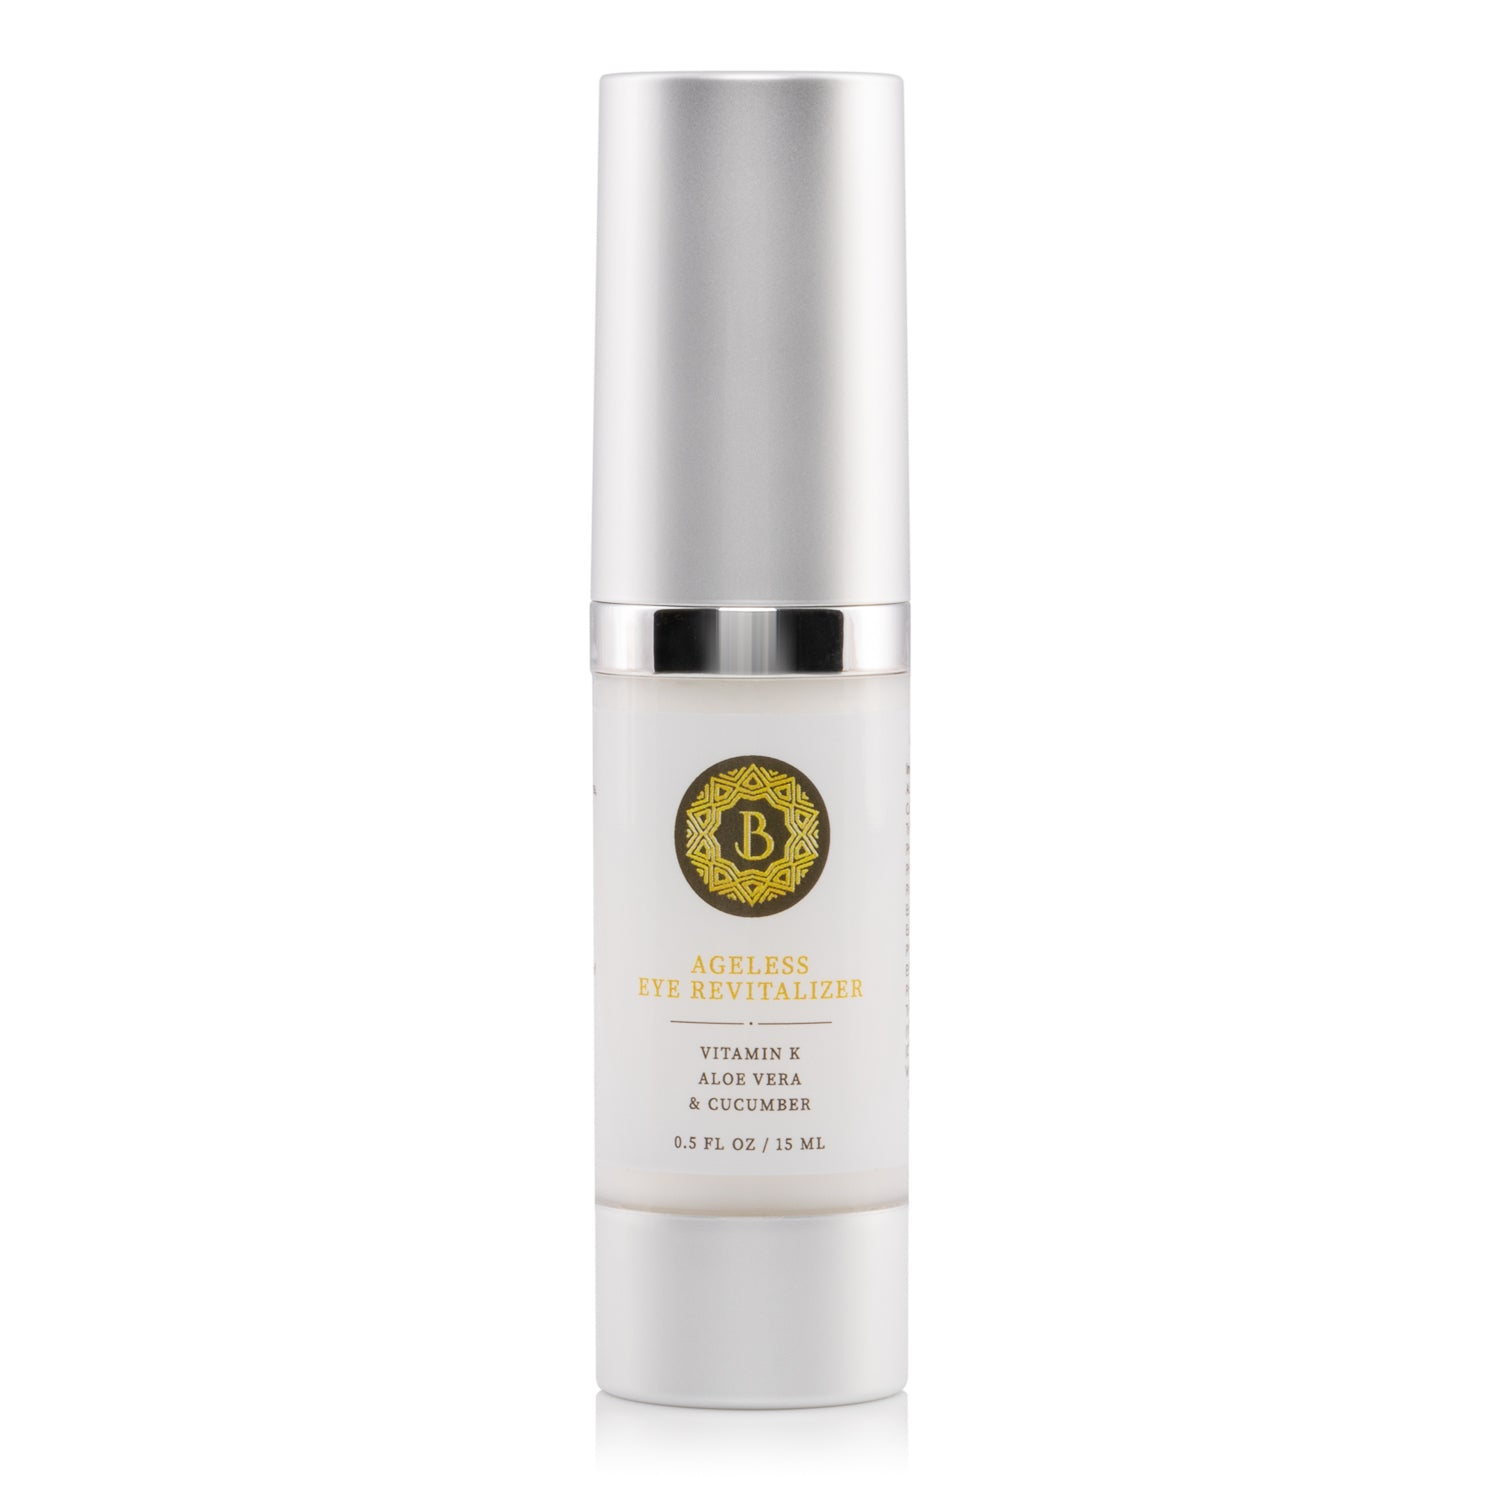 Ageless Eye Revitalizer